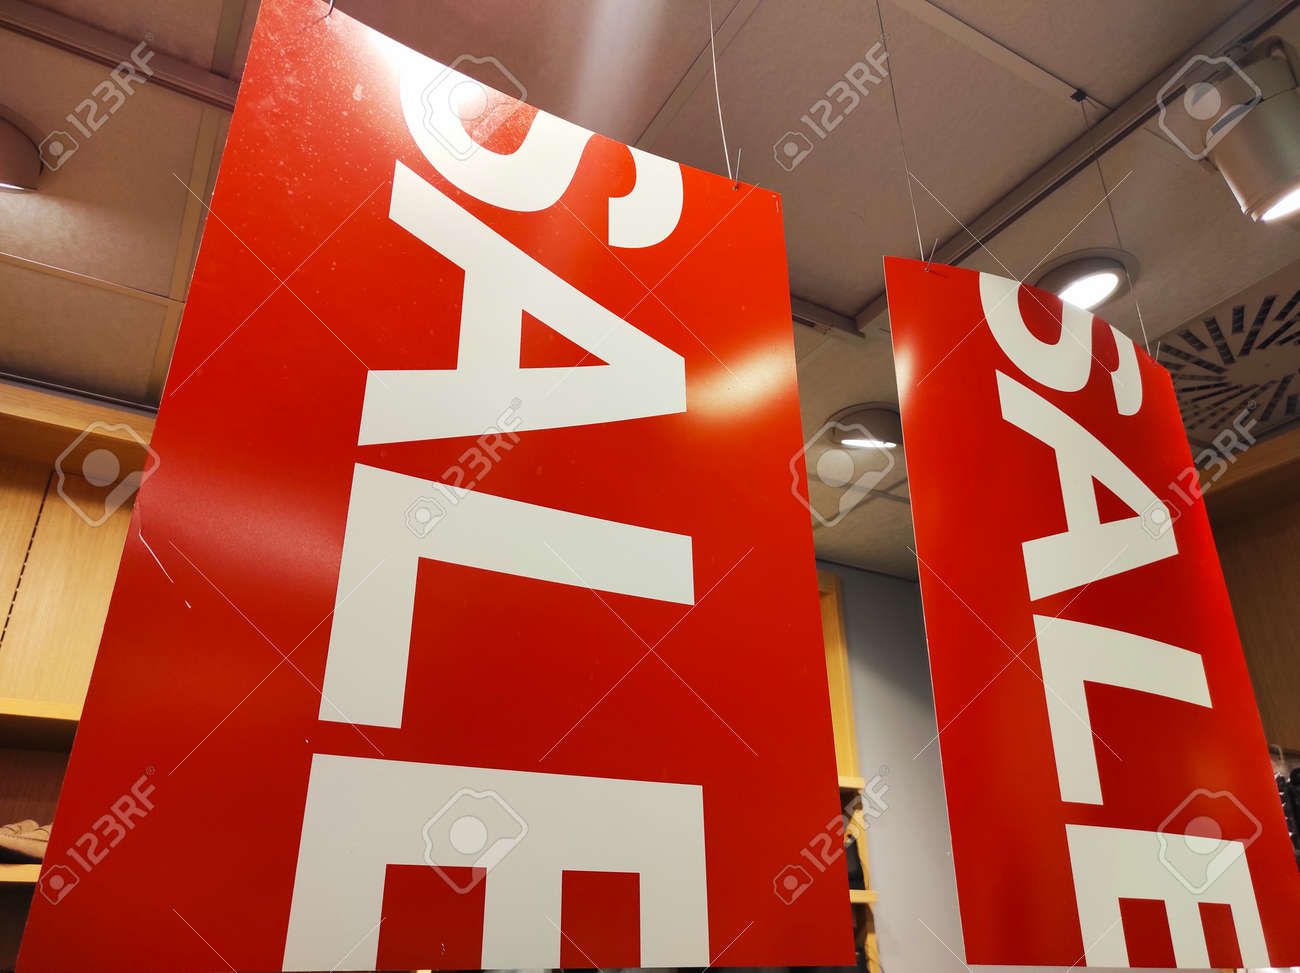 Sale signs in a clothing store. - 155645483